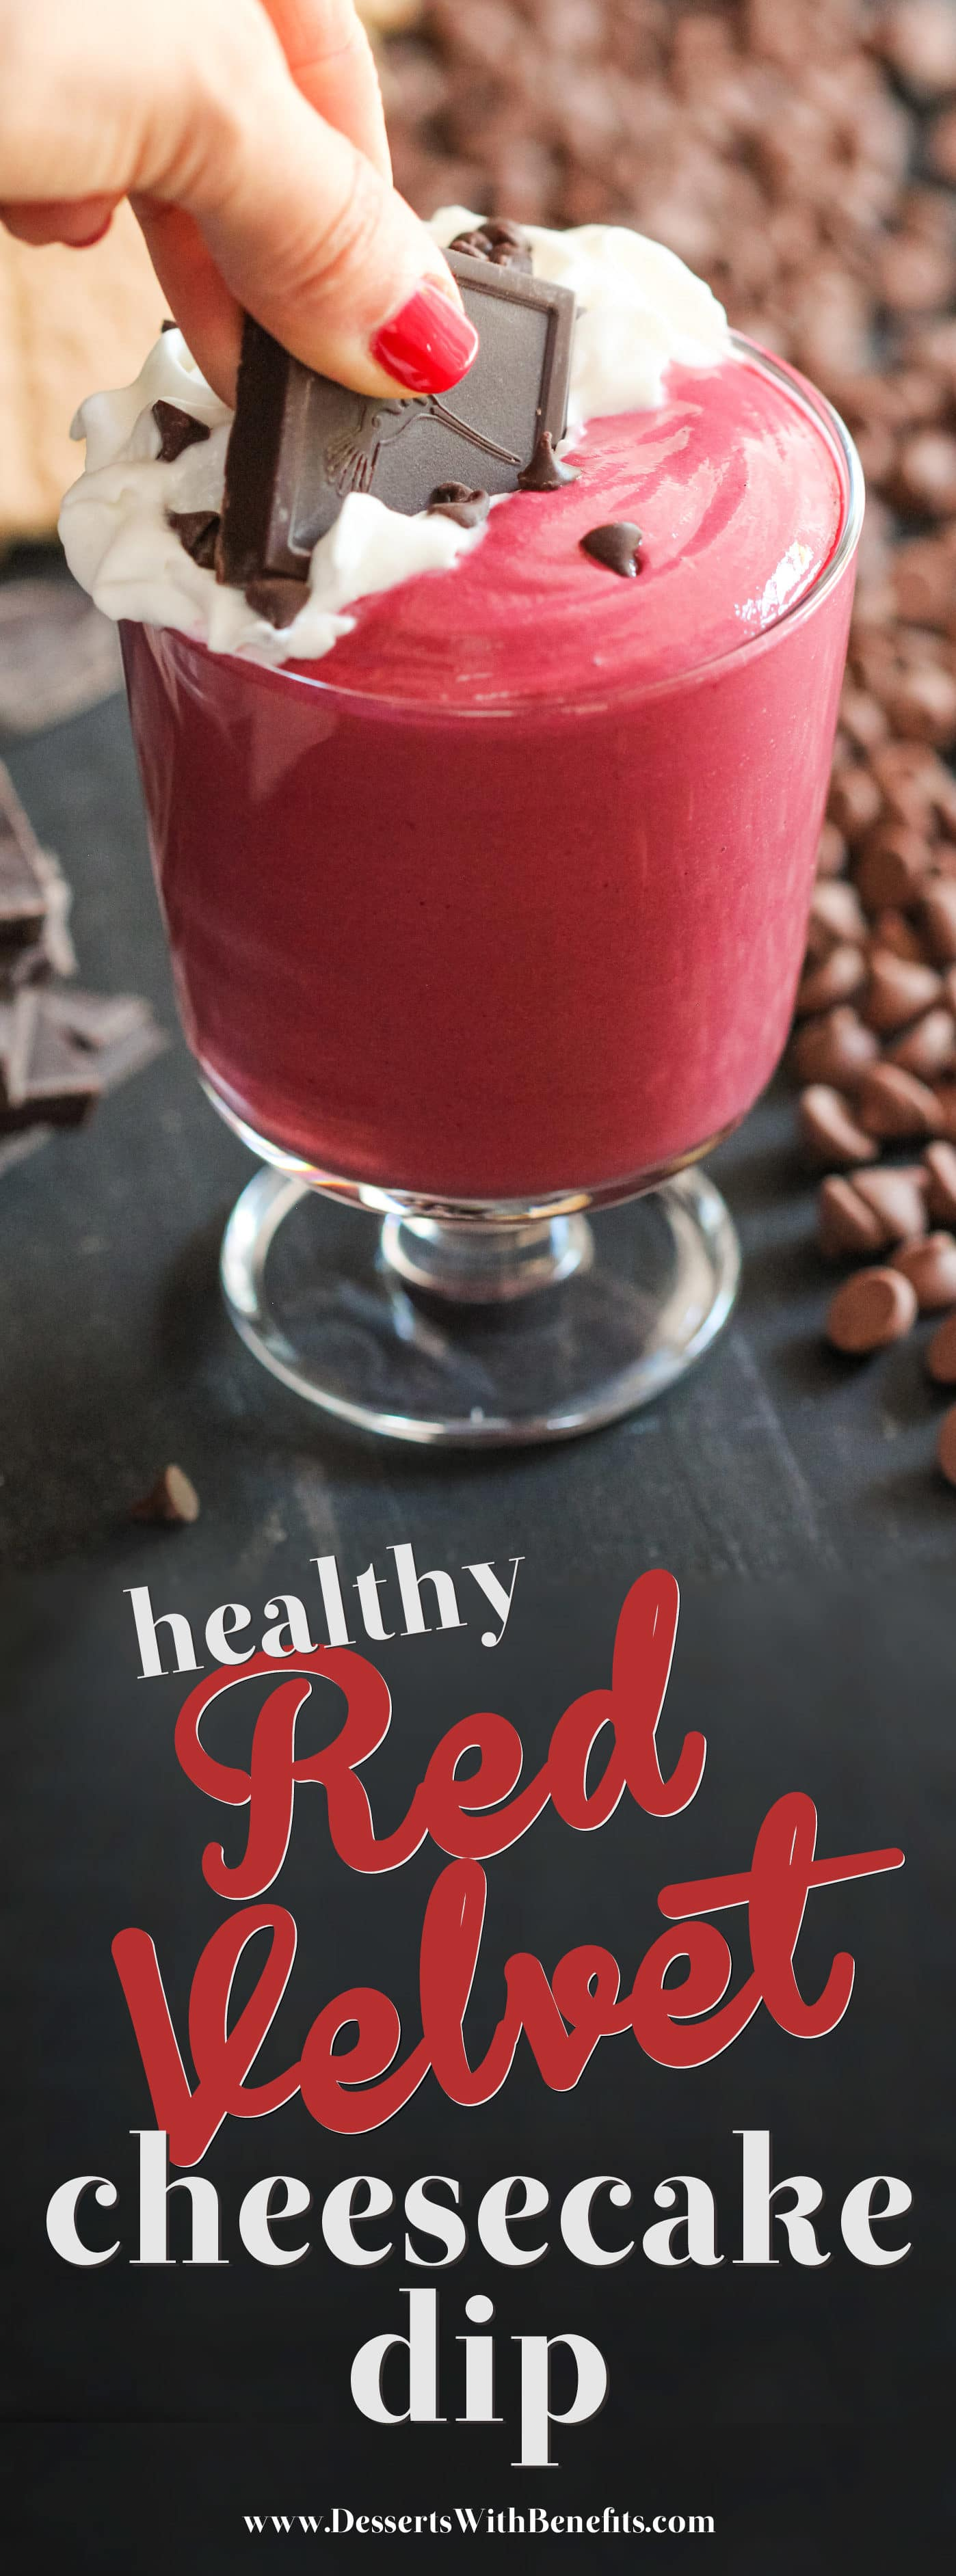 This Healthy Red Velvet Cheesecake Dip is rich, sweet, creamy, and completely addicting! And made with a secret ingredient too! One bite and you'll be hooked. Oh, but don't worry, it's sugar free, low carb, low fat, high protein, and gluten free. Healthy Dessert Recipes with low calorie, low fat, high protein, gluten free, dairy free, vegan, and raw options at the Desserts With Benefits Blog (www.DessertsWithBenefits.com)